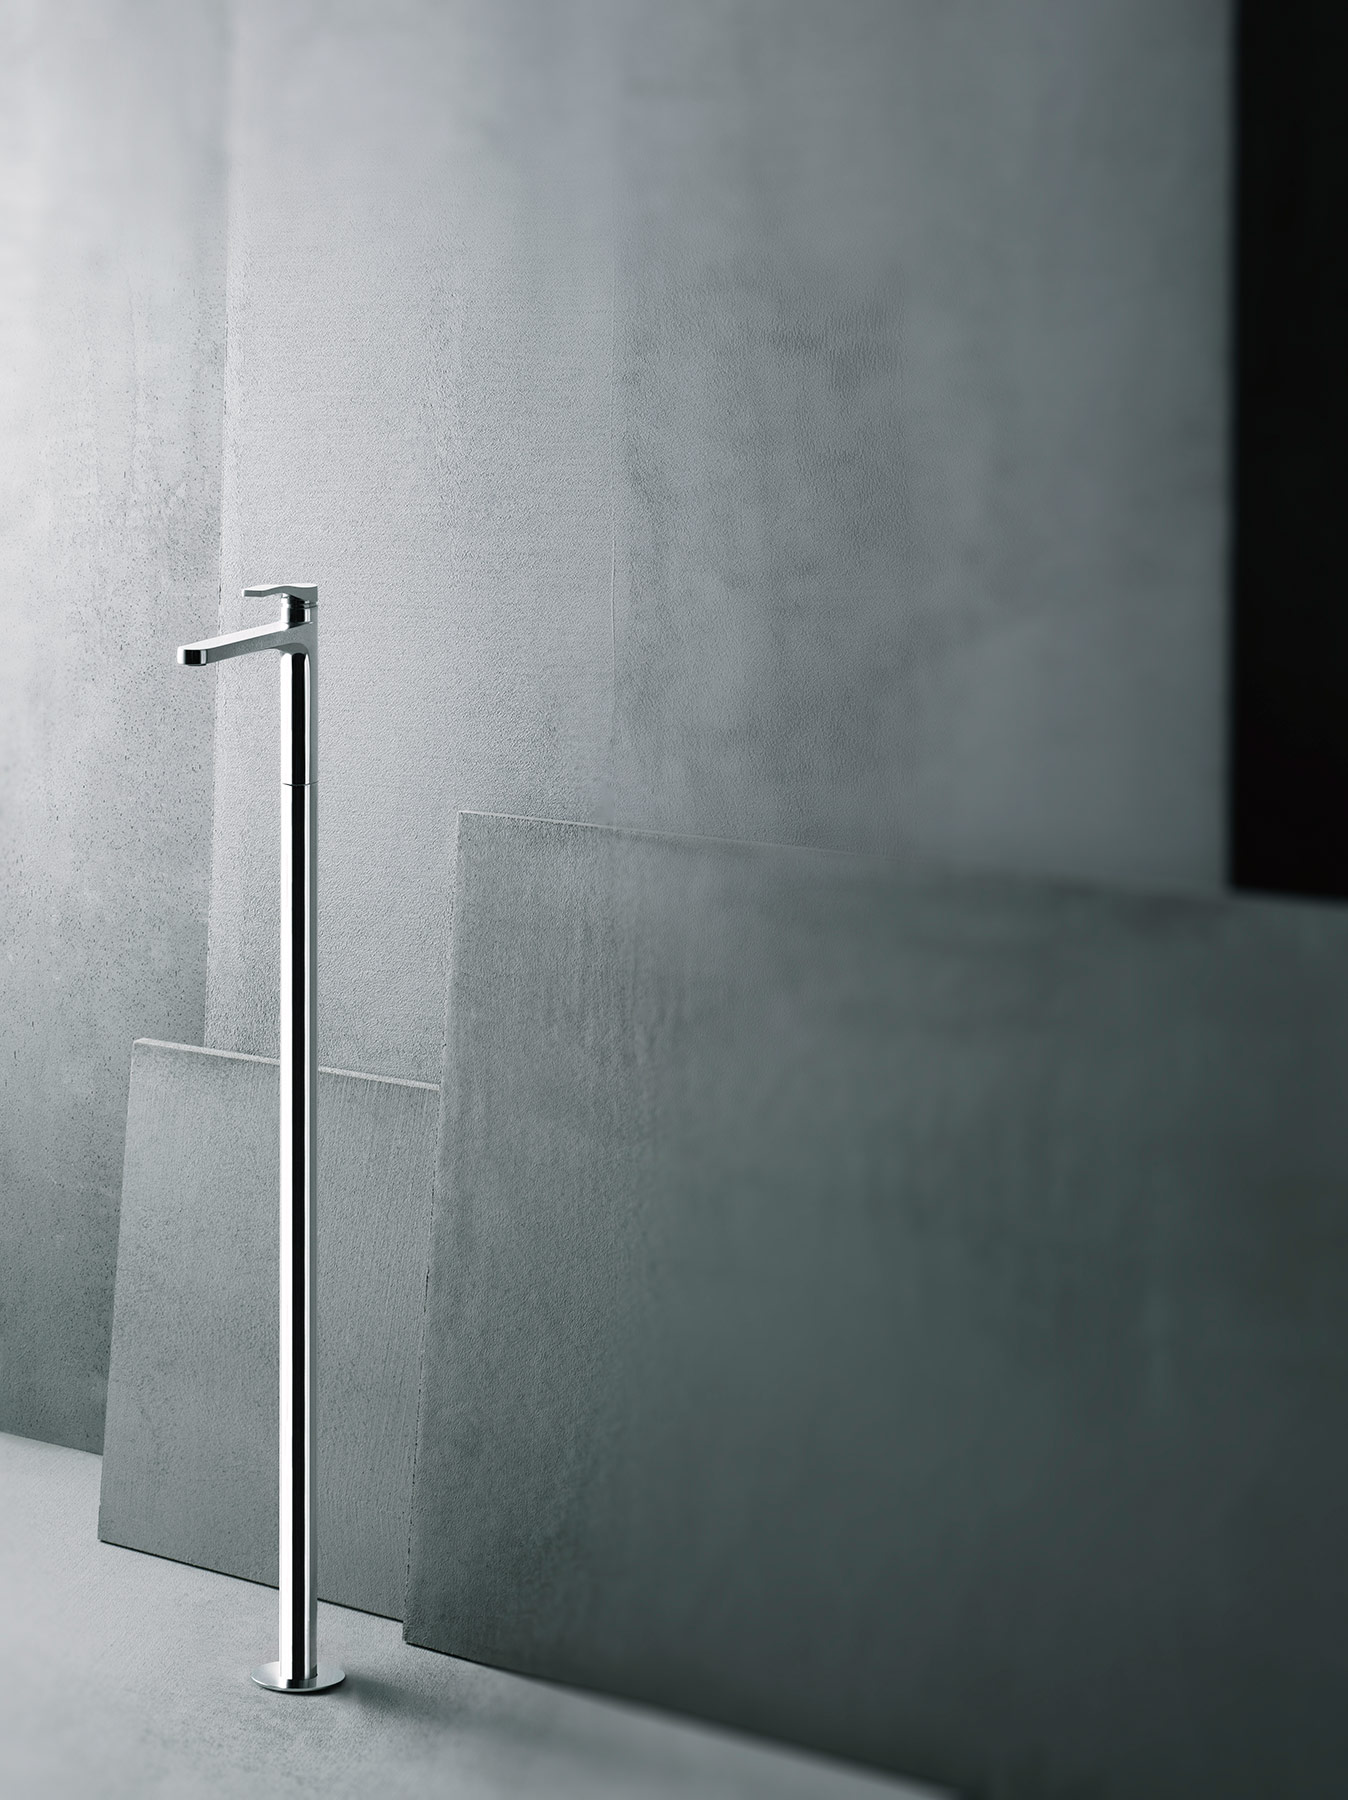 Transitional Lissoni Floor Mount Faucet